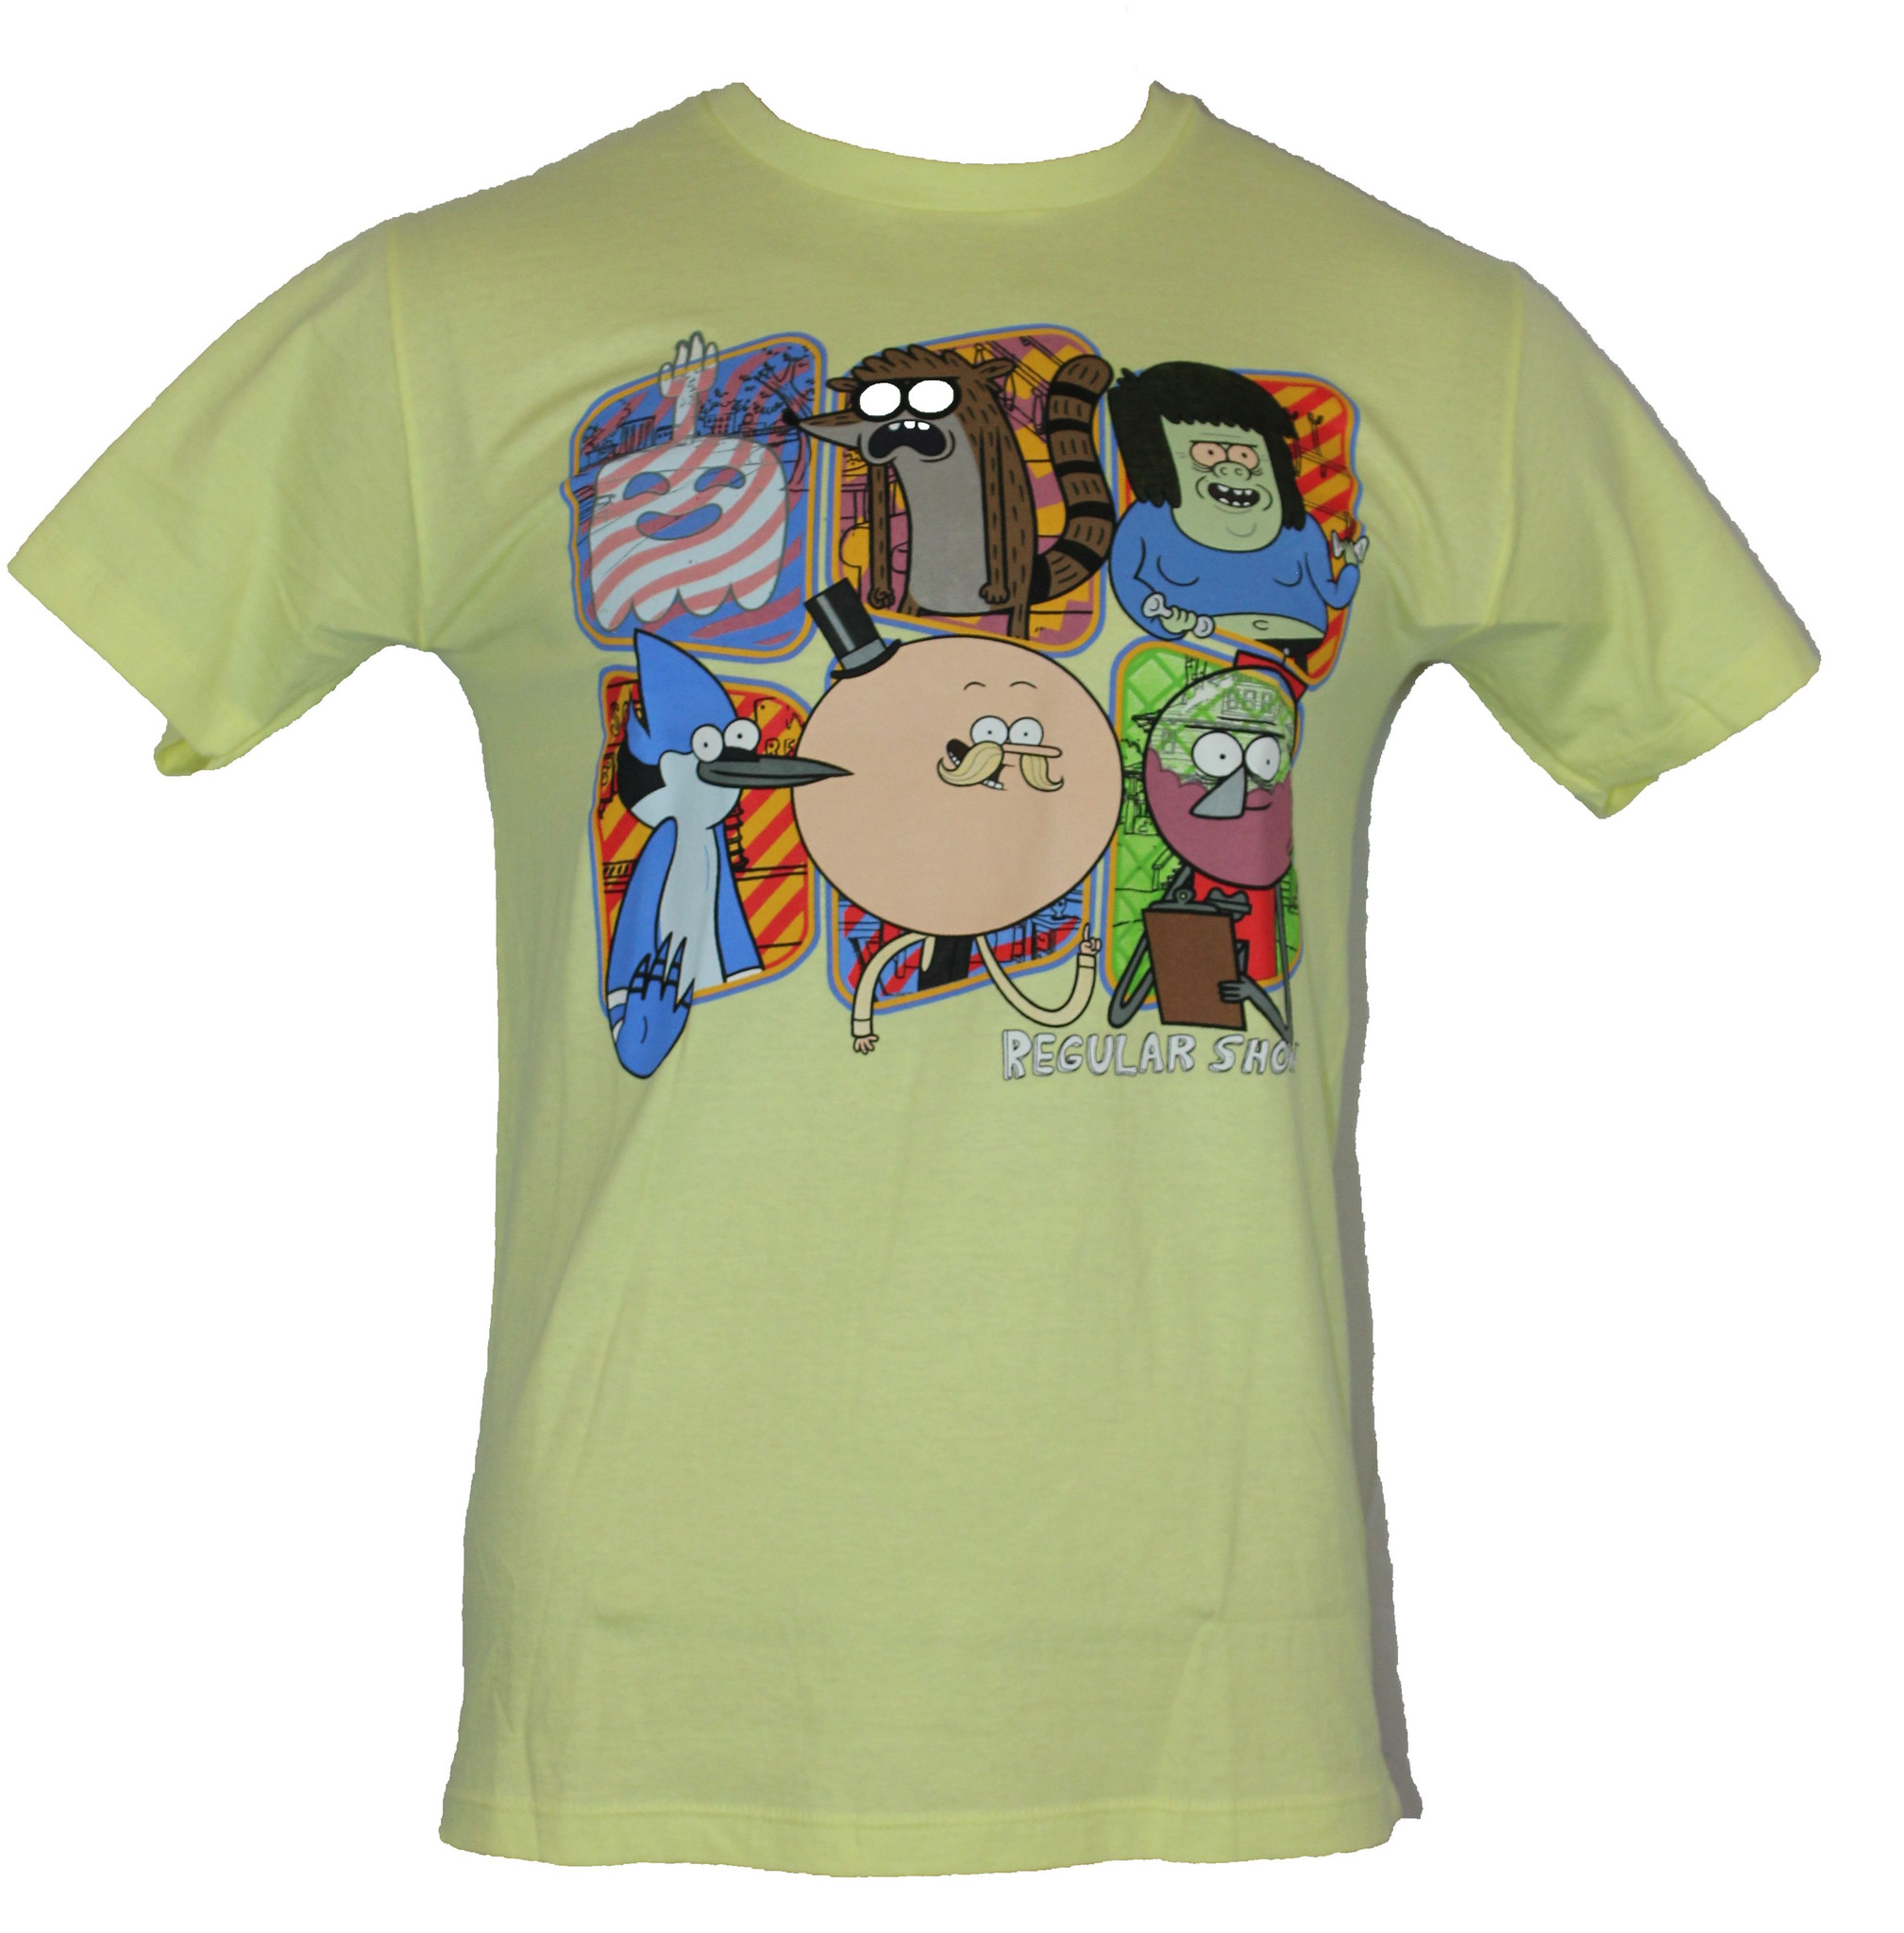 Regular Show Mens T-Shirt -  Main Cast Characters in Boxes Image